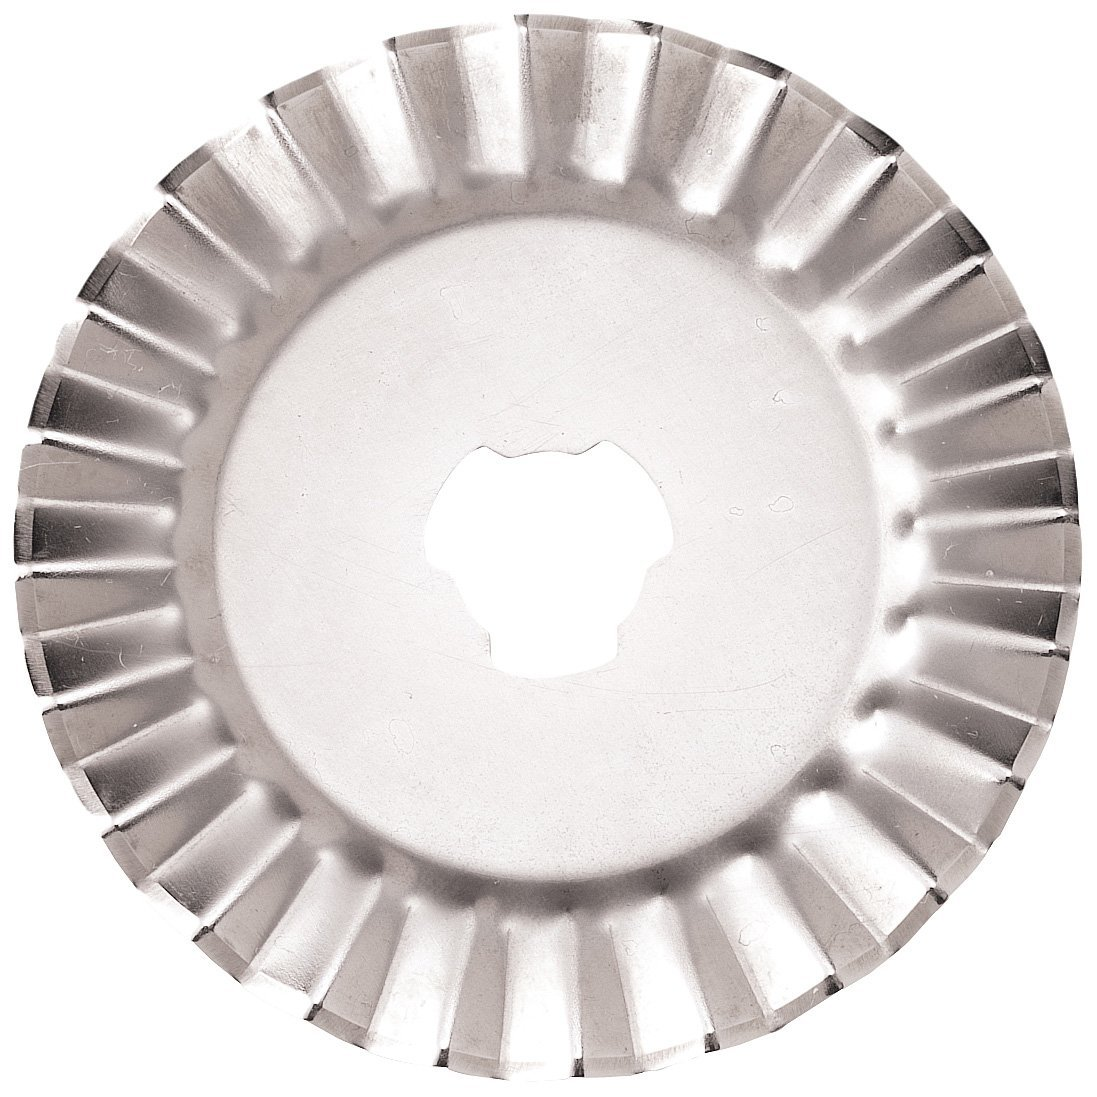 93518097J, Decorative Rotary Blades, Pinking, 45mm, 45mm interchangeable blade By Fiskars